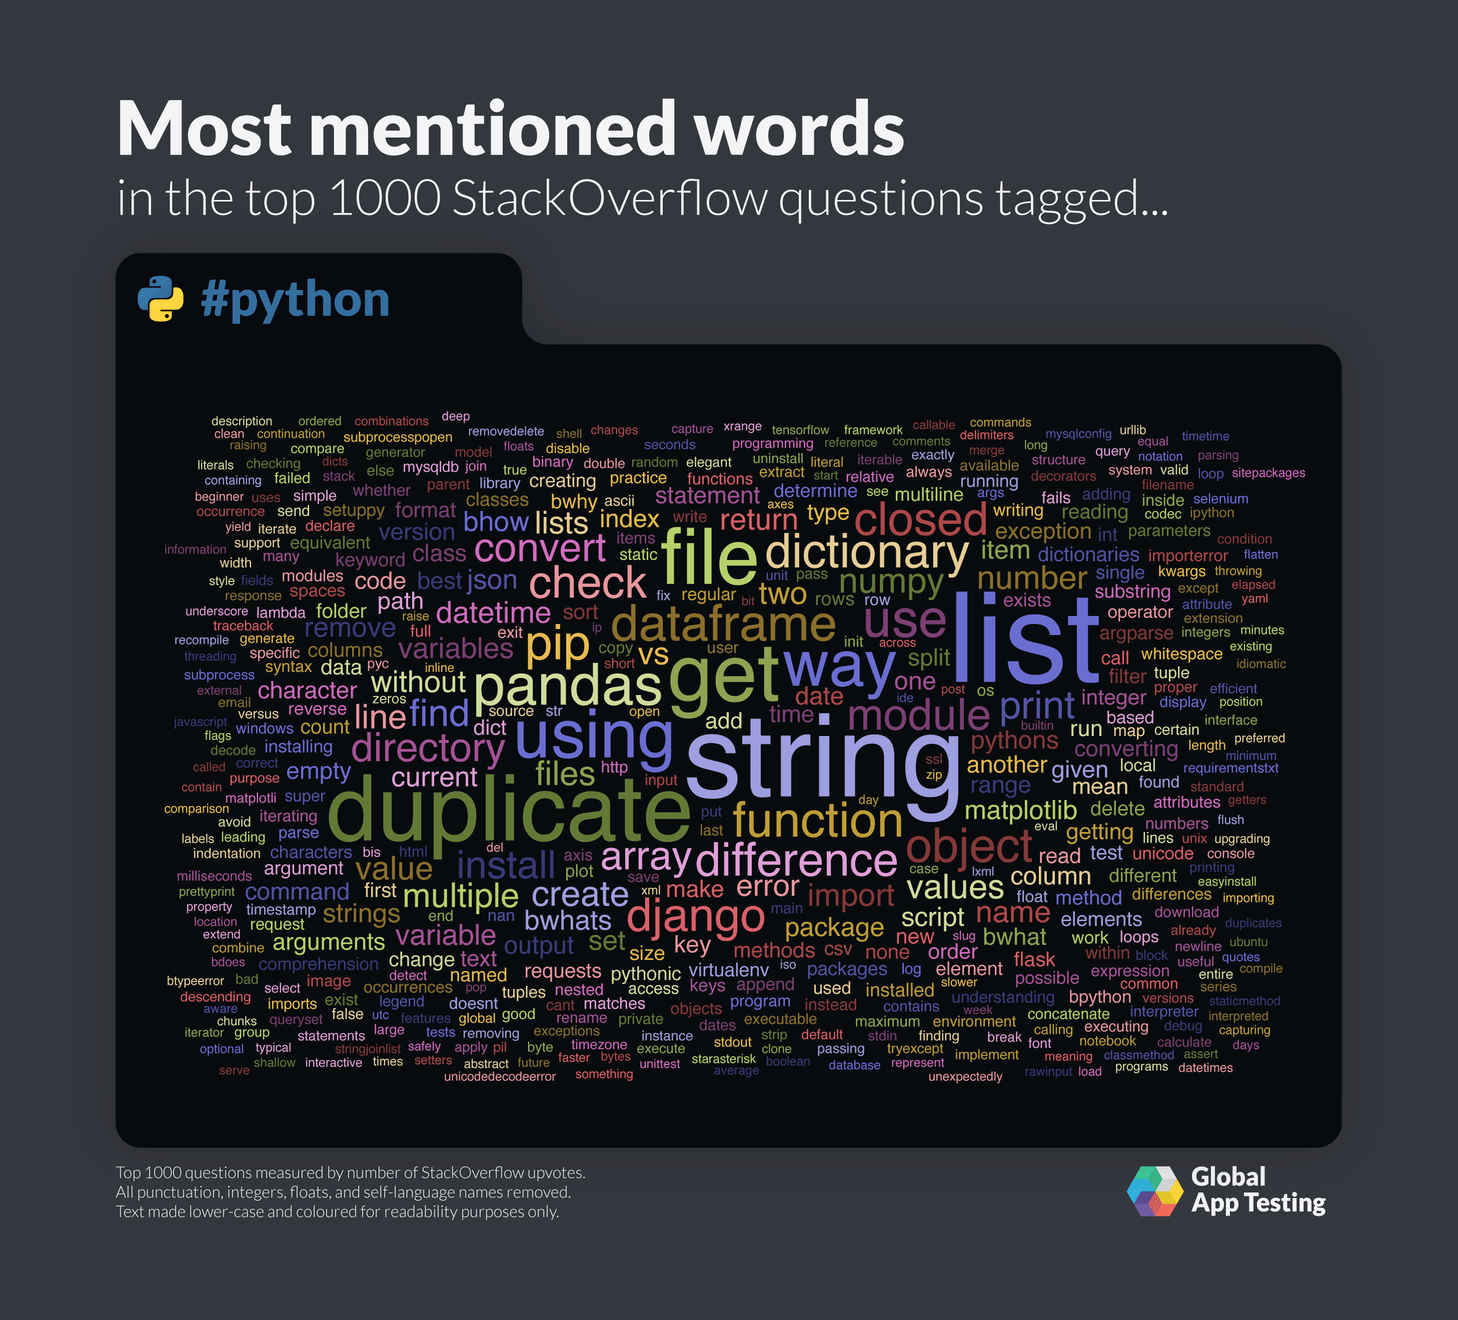 Most mentioned words for Python on StackOverflow.